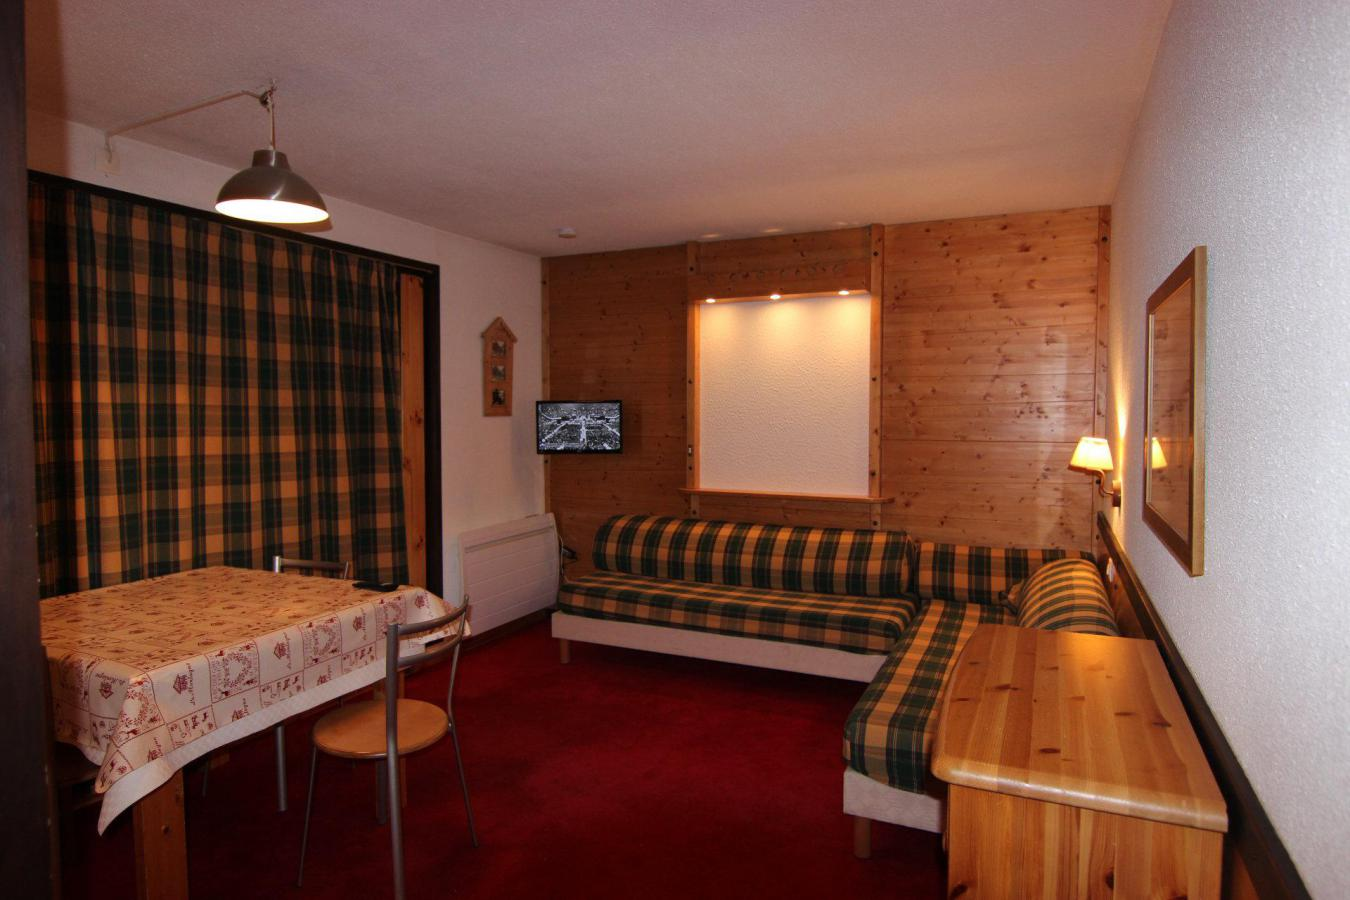 Location au ski Studio 2 personnes (221) - Residence De L'olympic - Val Thorens - Kitchenette